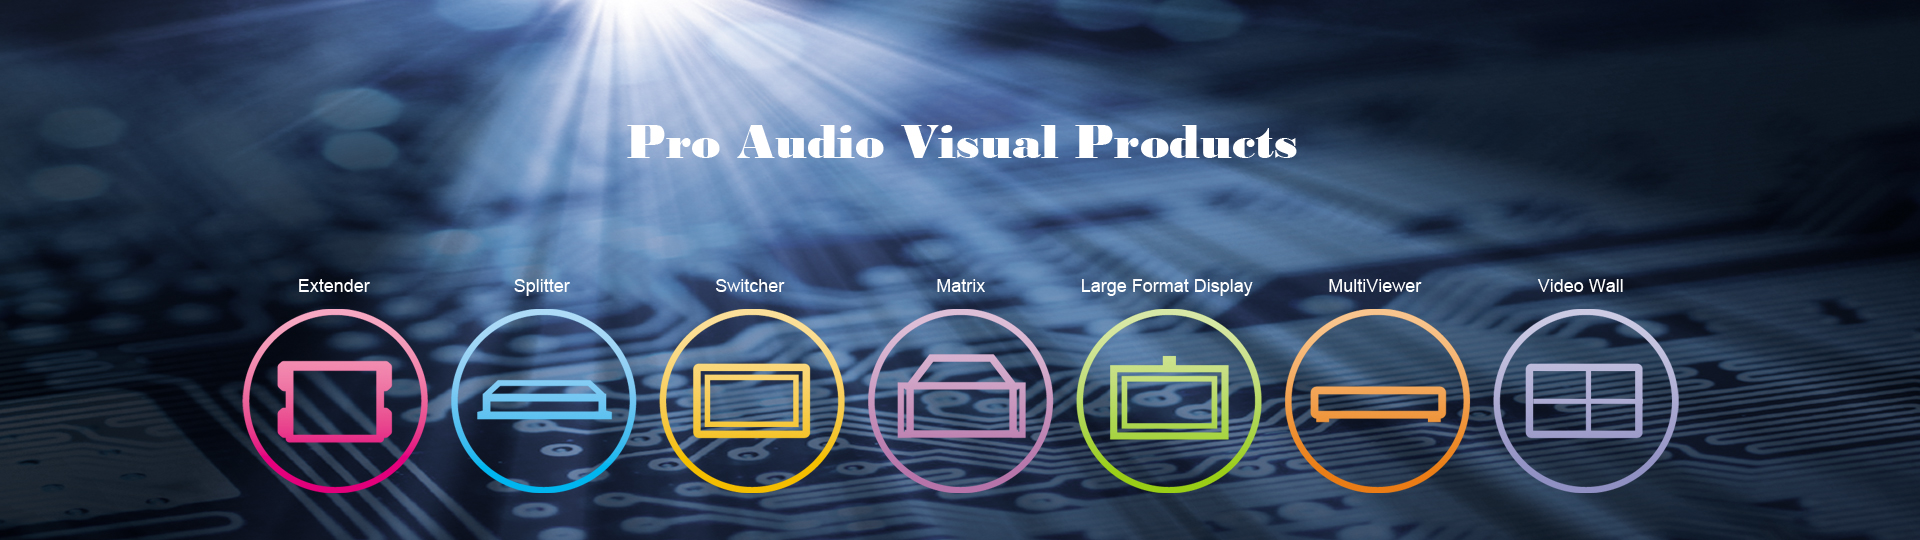 Pro Audio Visual Products